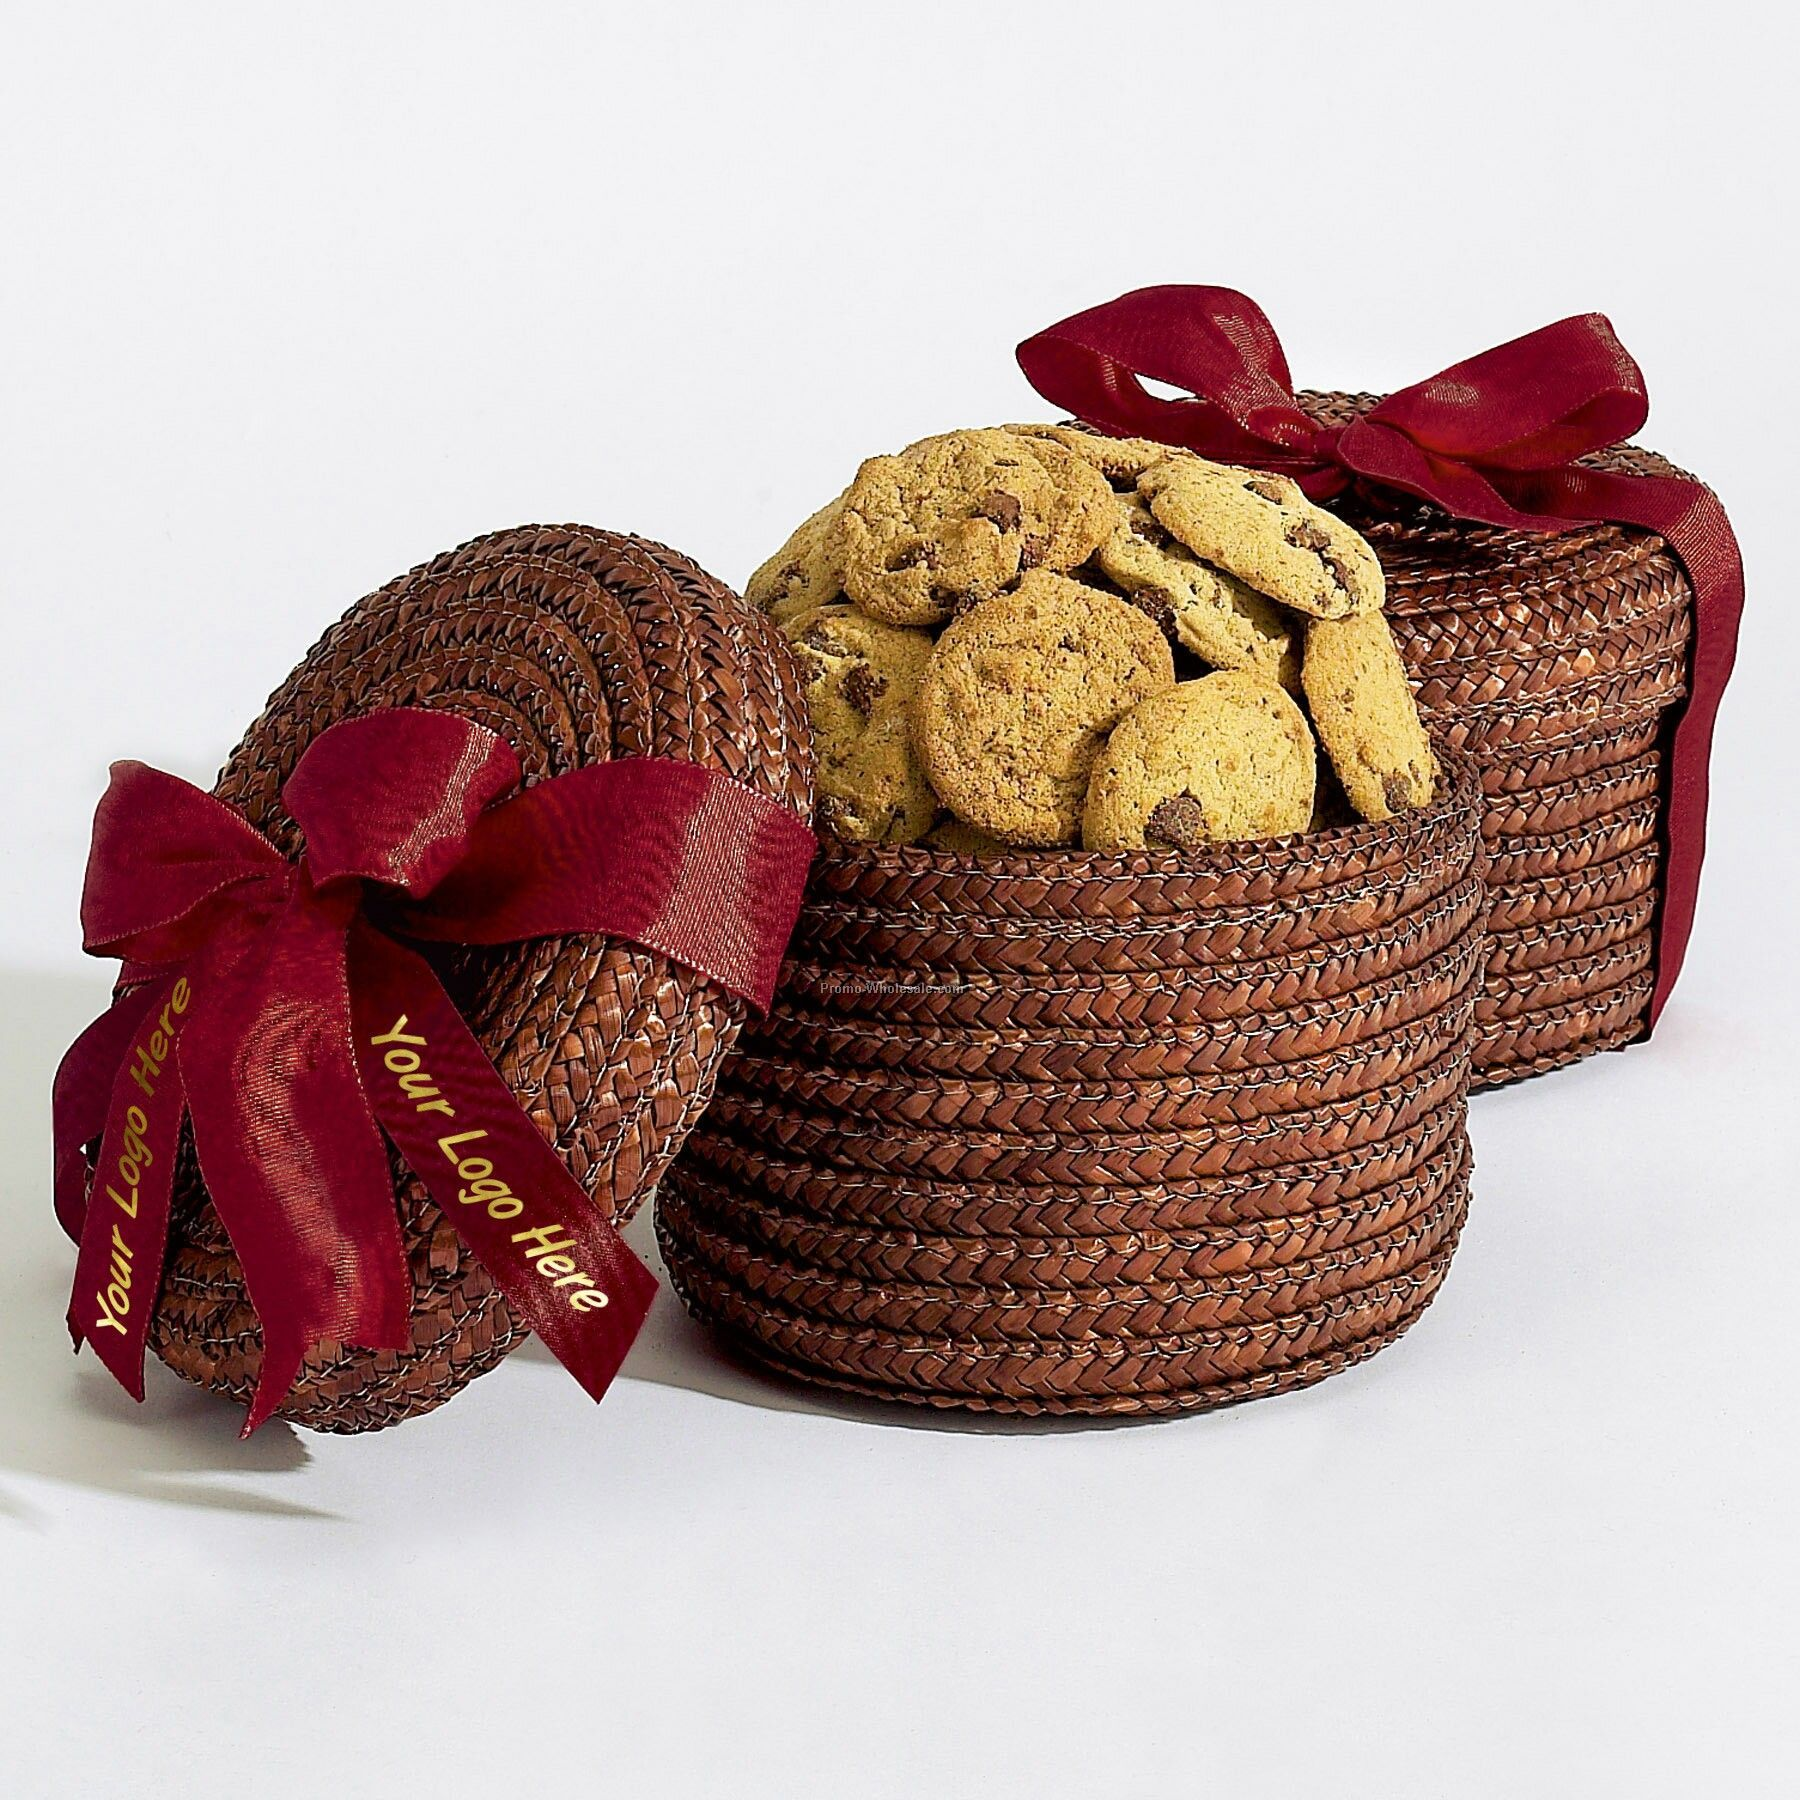 Cookie Lover's Delight Lidded Gift Basket